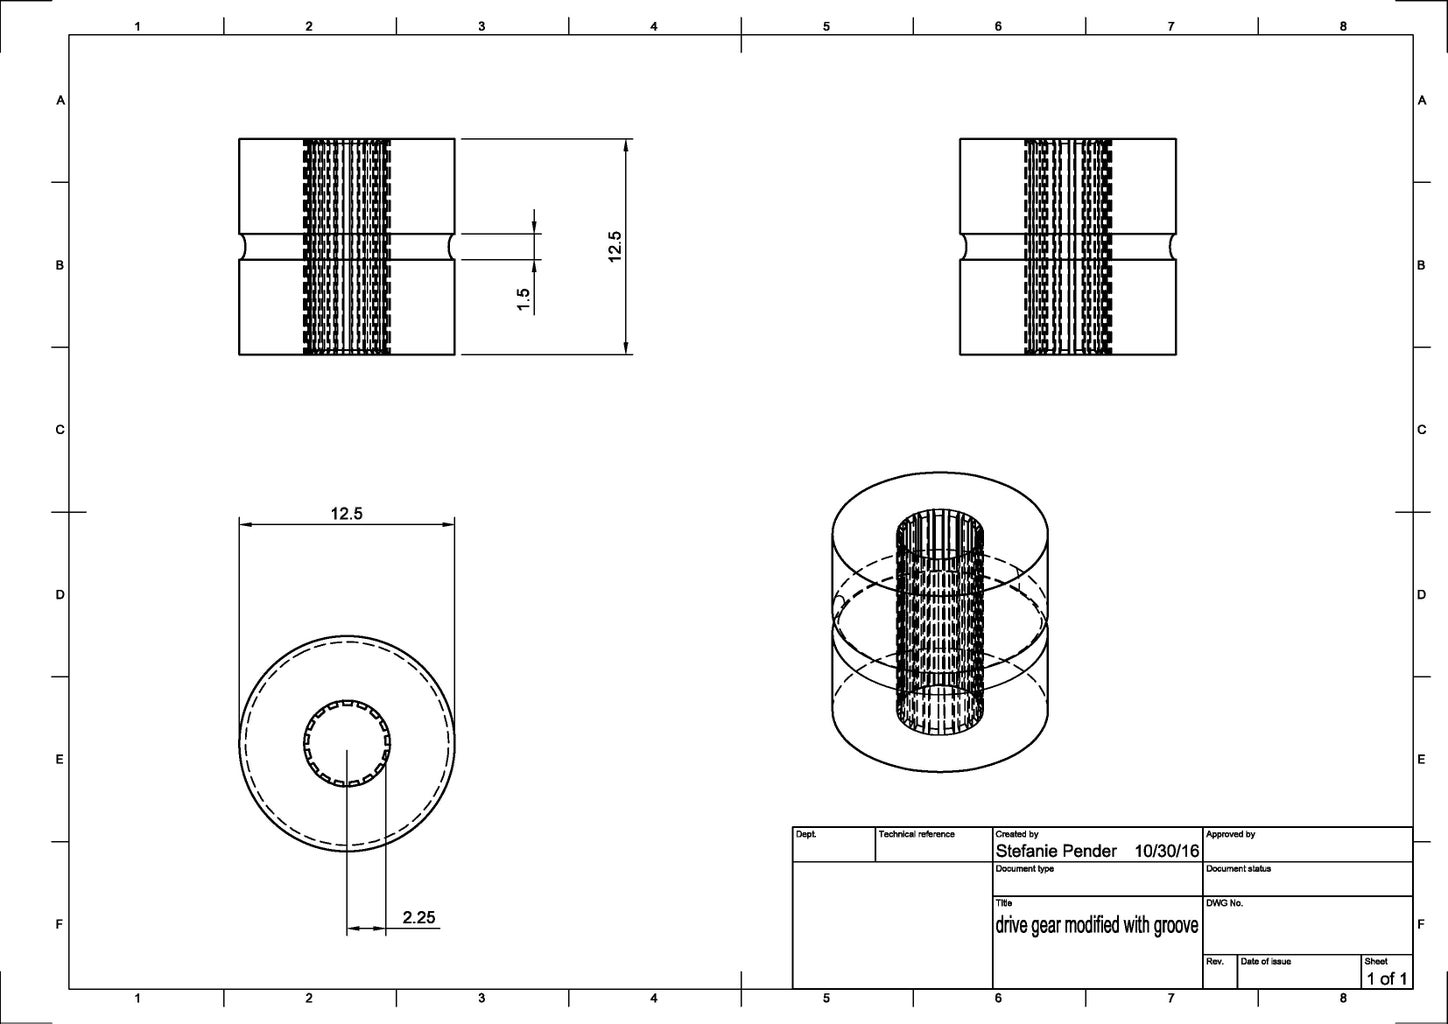 Manual Lathe: Nozzle and Gear